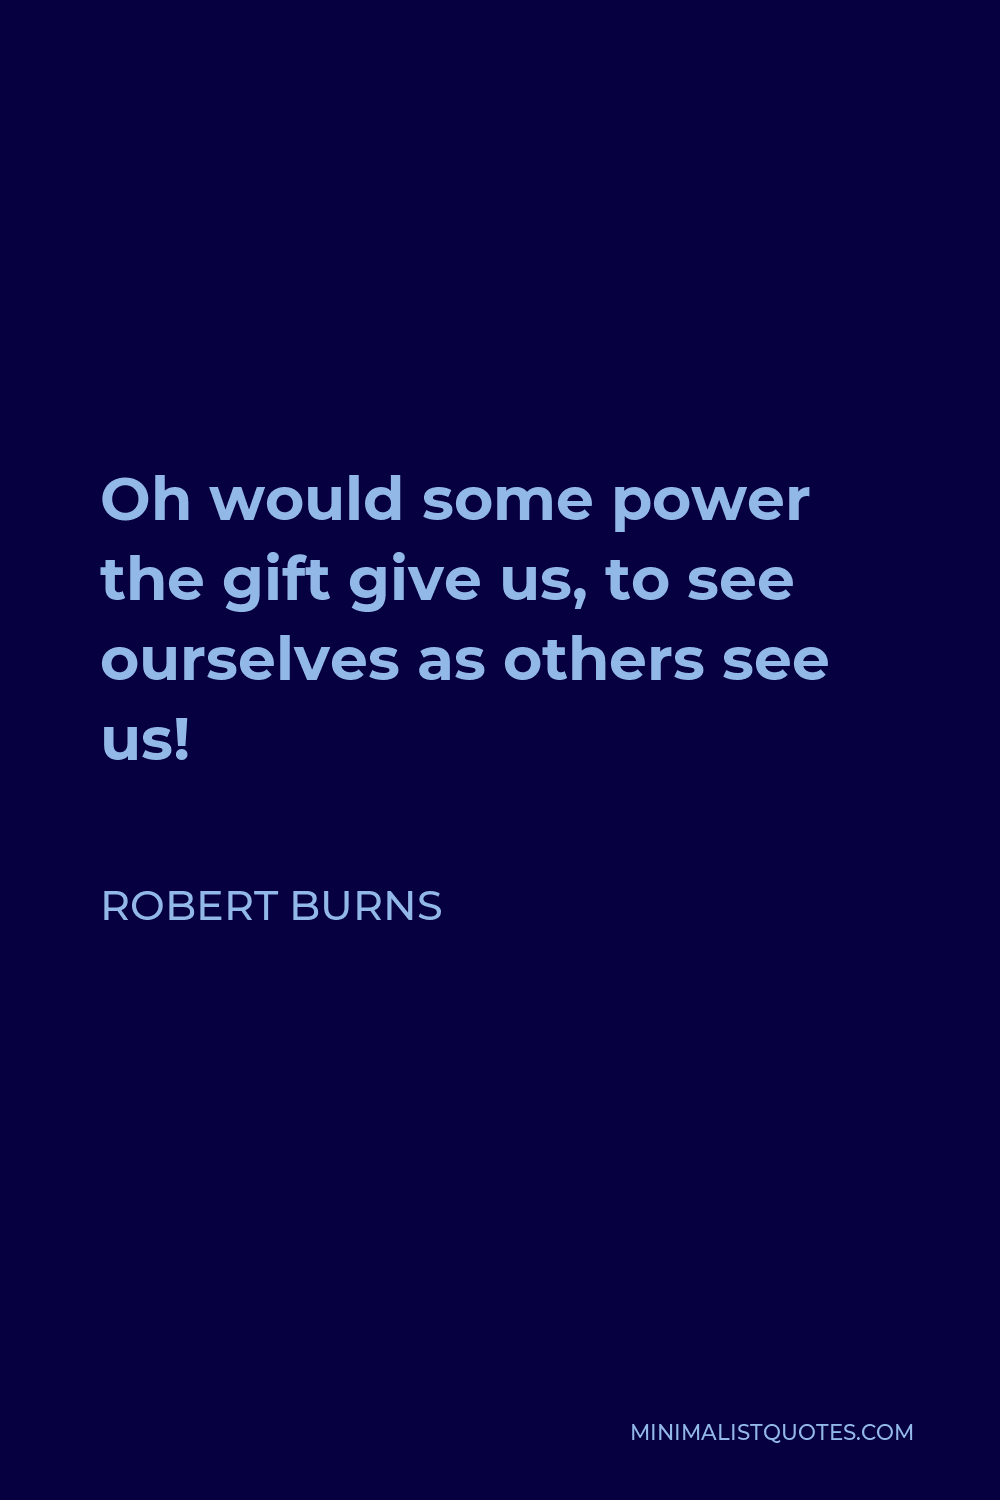 Robert Burns Quote - Oh would some power the gift give us, to see ourselves as others see us!